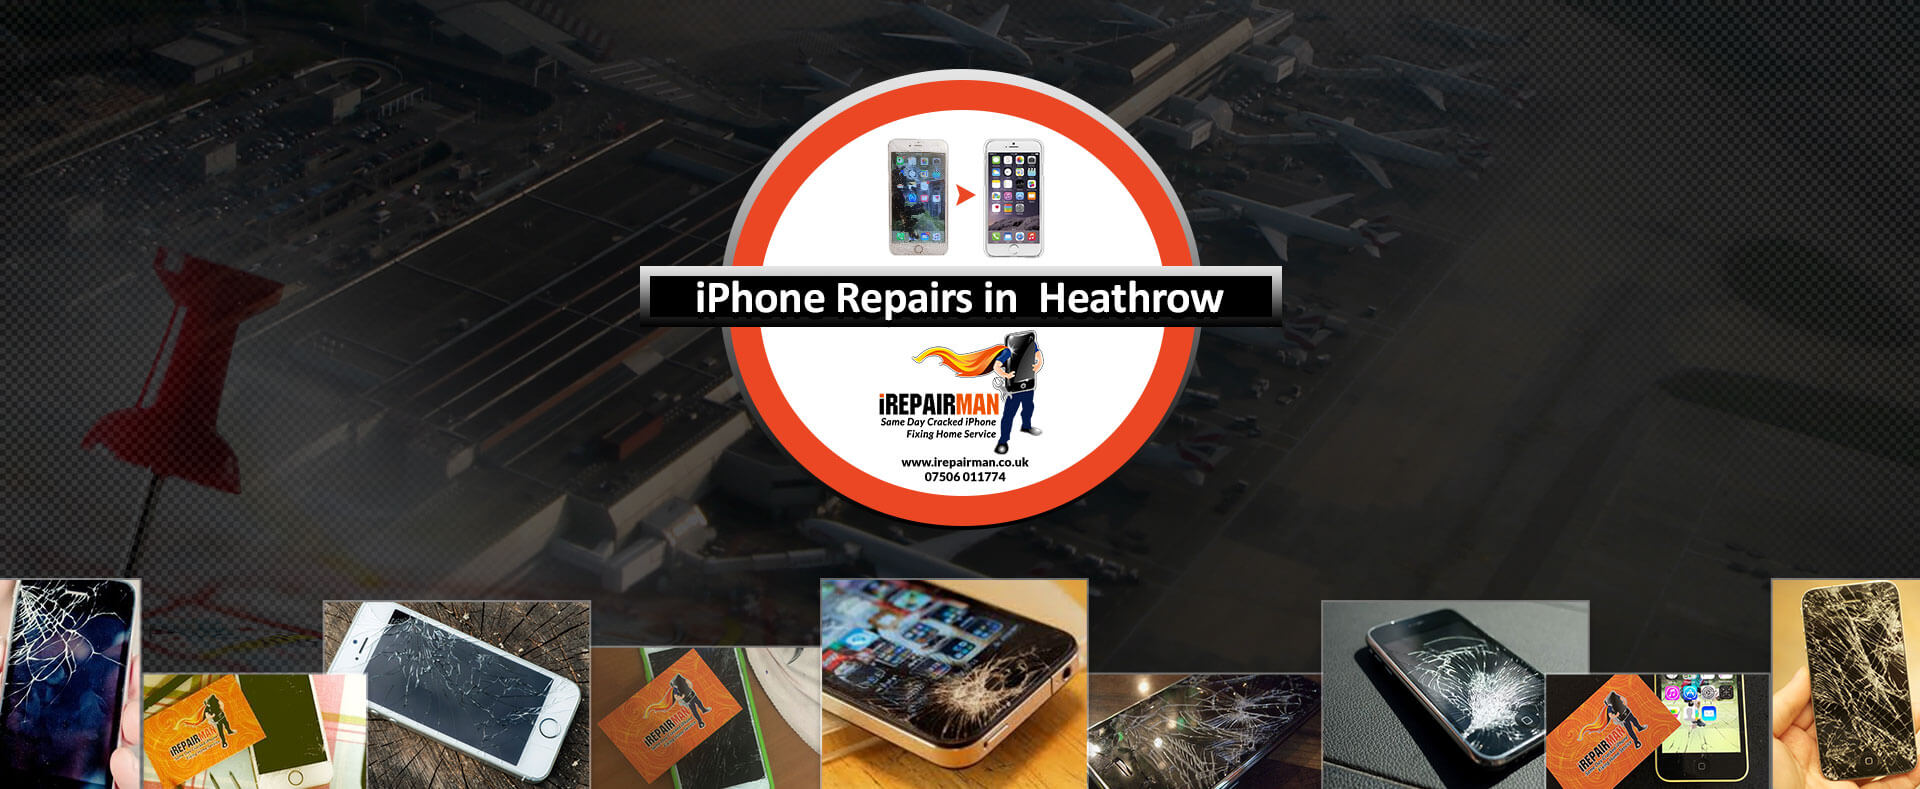 iPhone Repairs in Heathrow